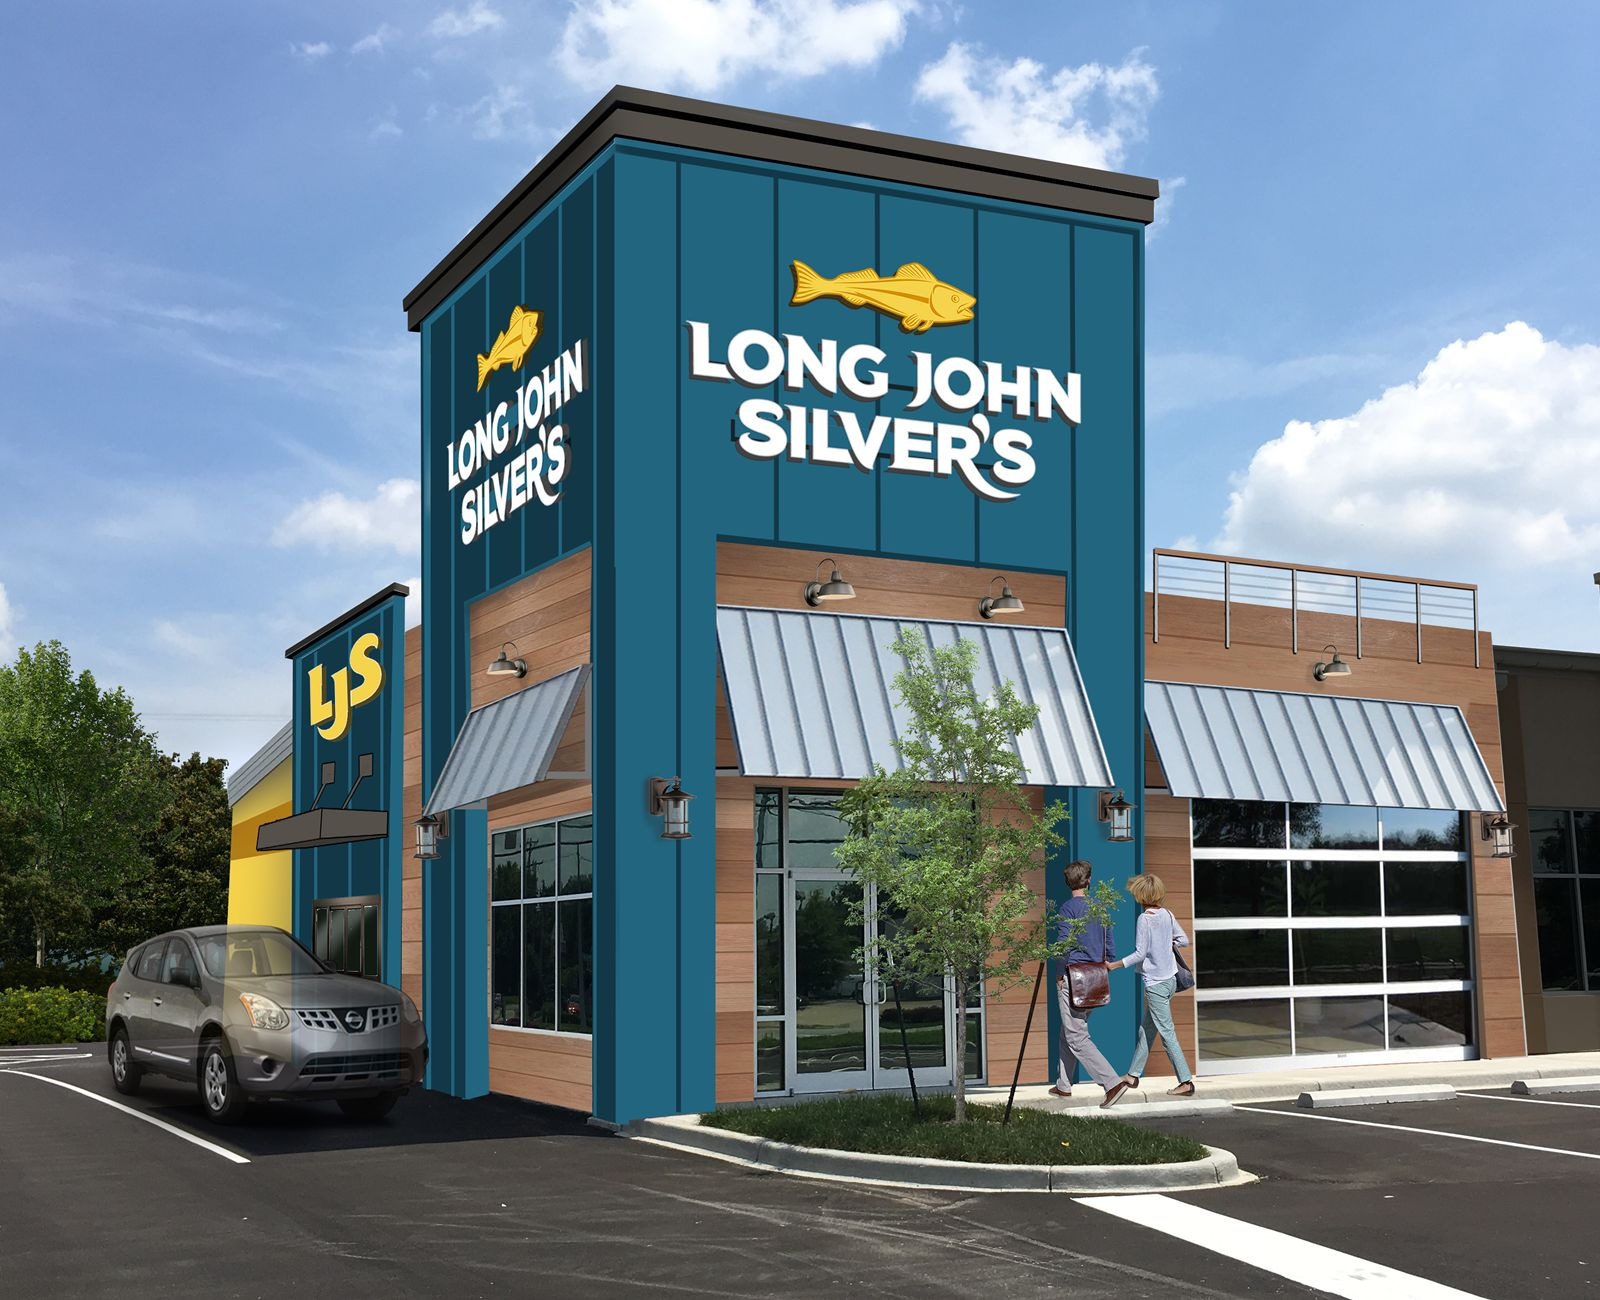 Long John Silver's is the nation's largest seafood chain. With nearly 1, locations, we are also the leading restaurant in serving quality, sustainably wild caught Whitefish and Cod. In addition to being known for our cravable fish and seafood, our menu also includes delicious white-meat chicken, and sides.3/5(46).